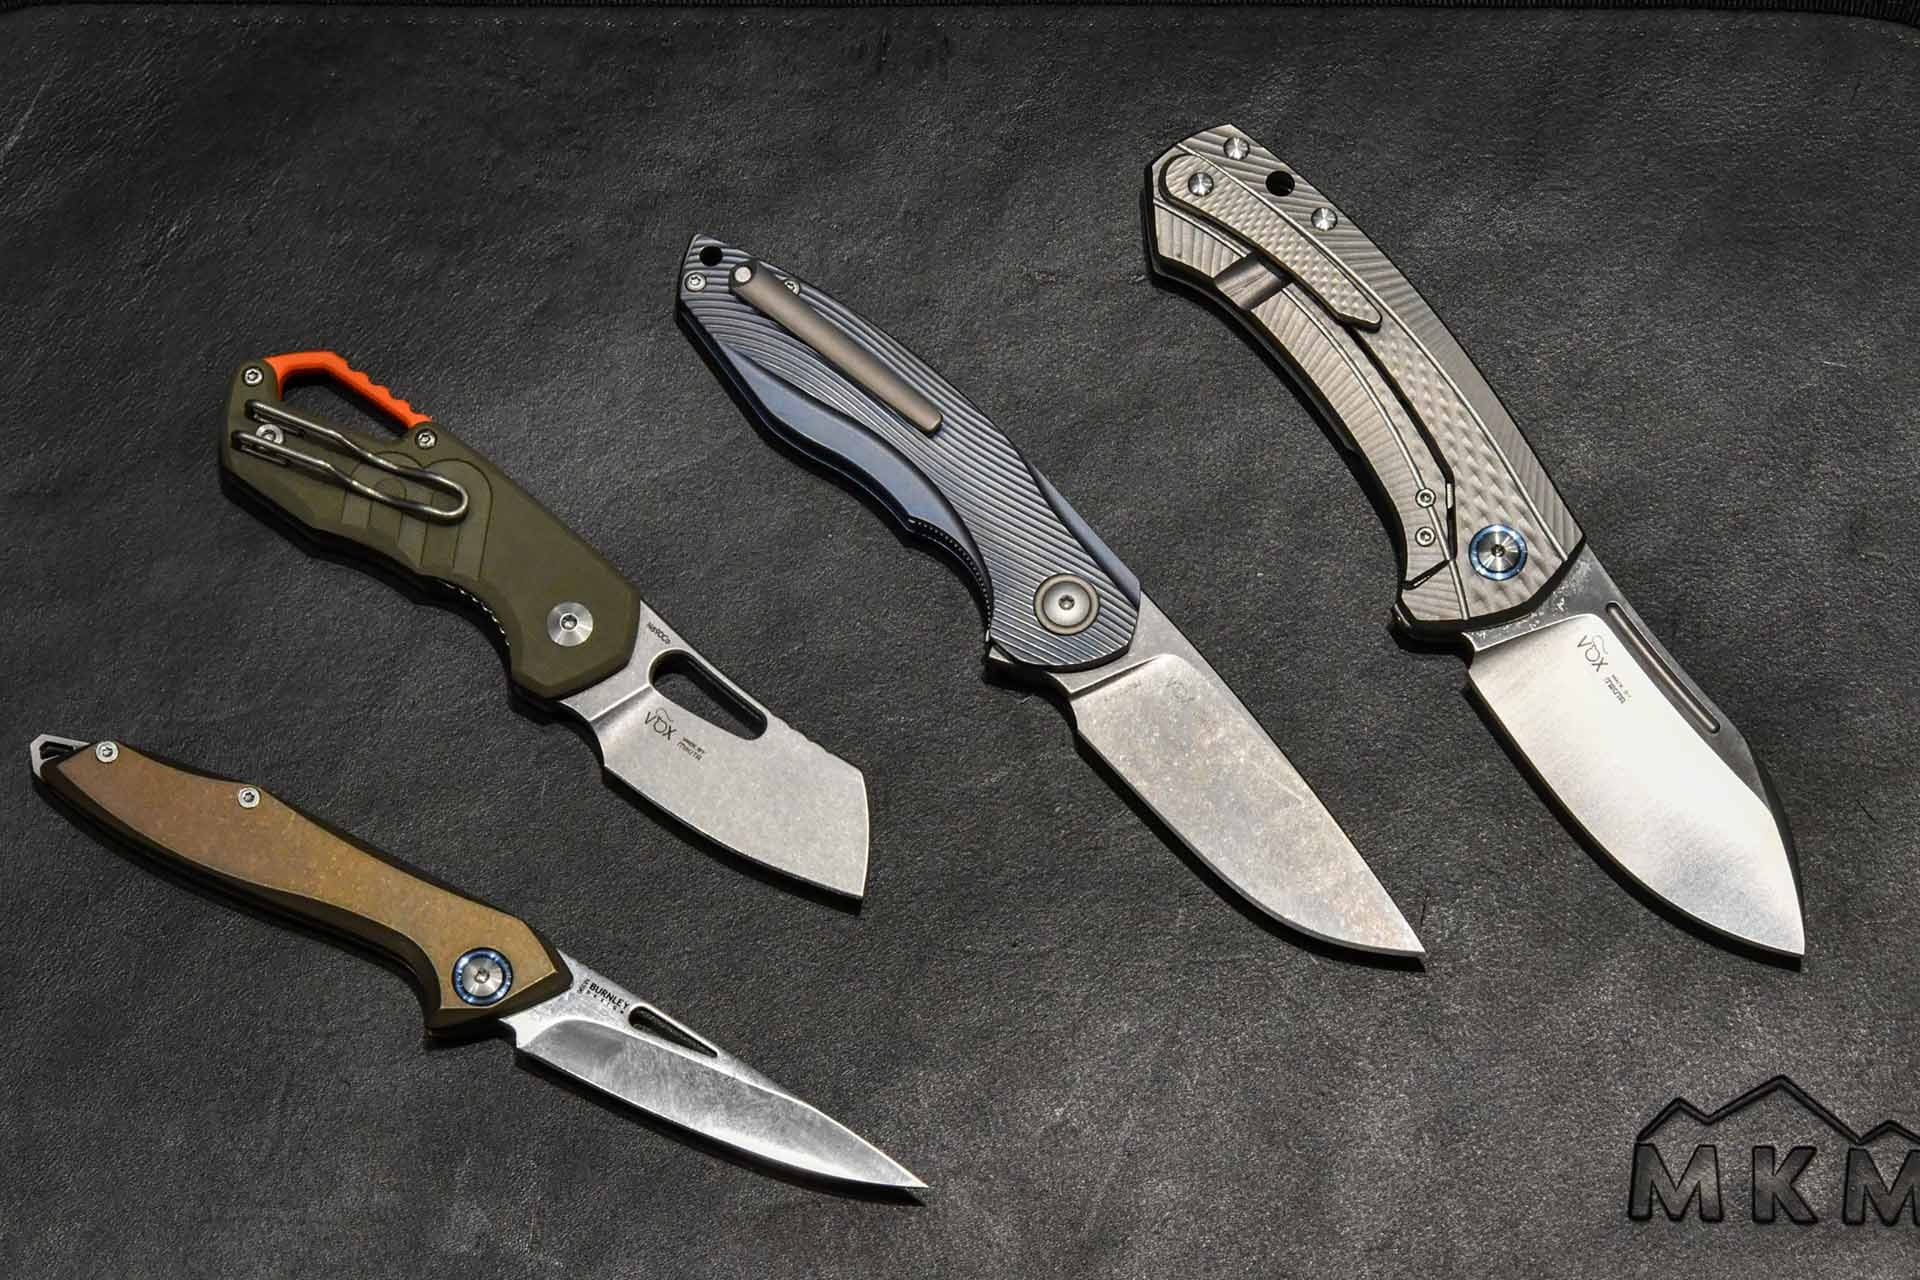 New Mikita line of knives 2019